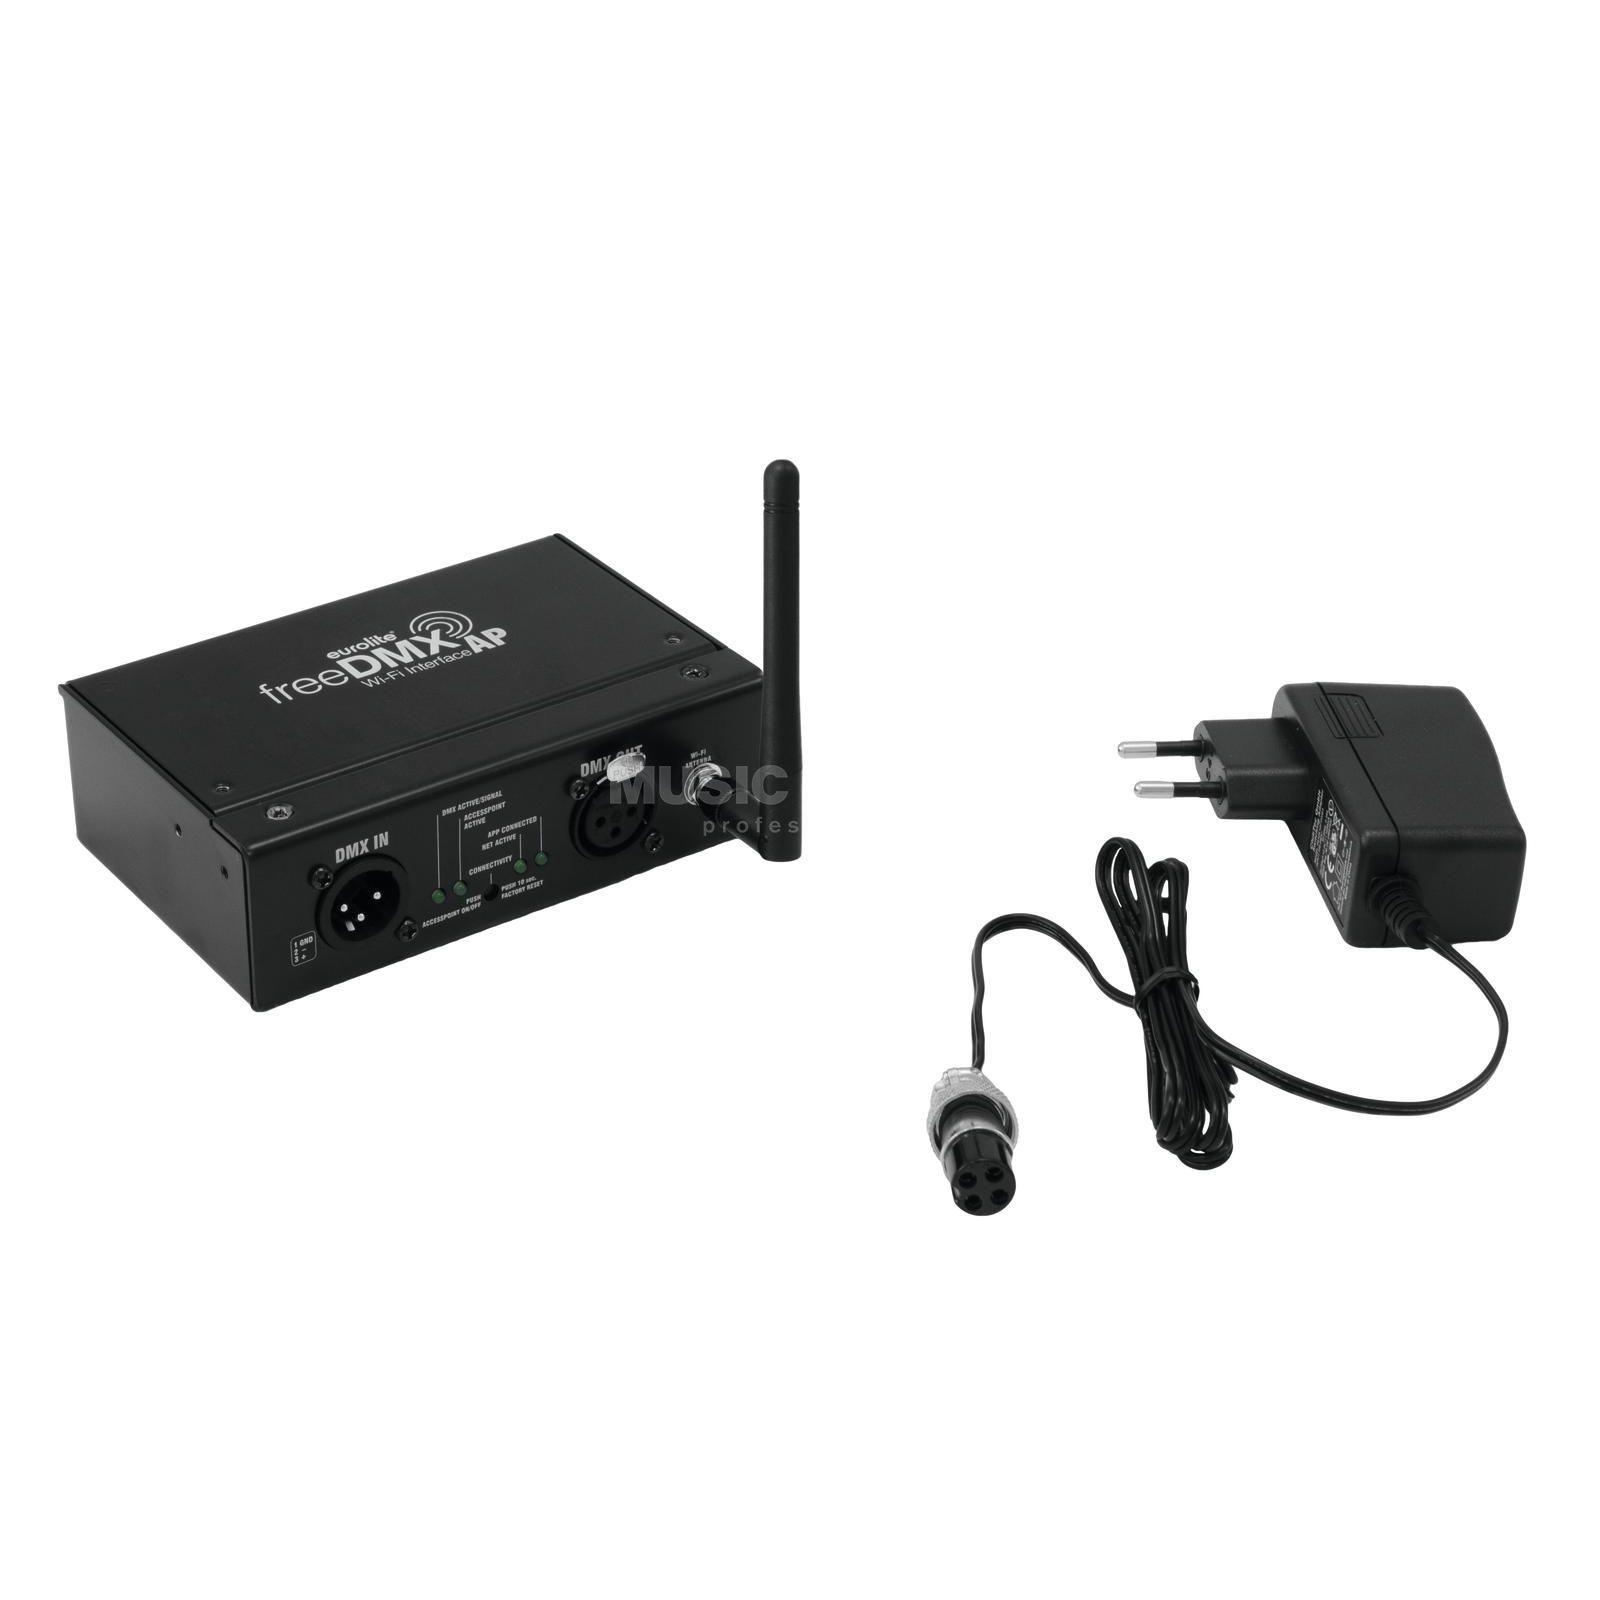 Eurolite freeDMX AP Wi-Fi Interface WLAN-DMX-Interface Imagem do produto